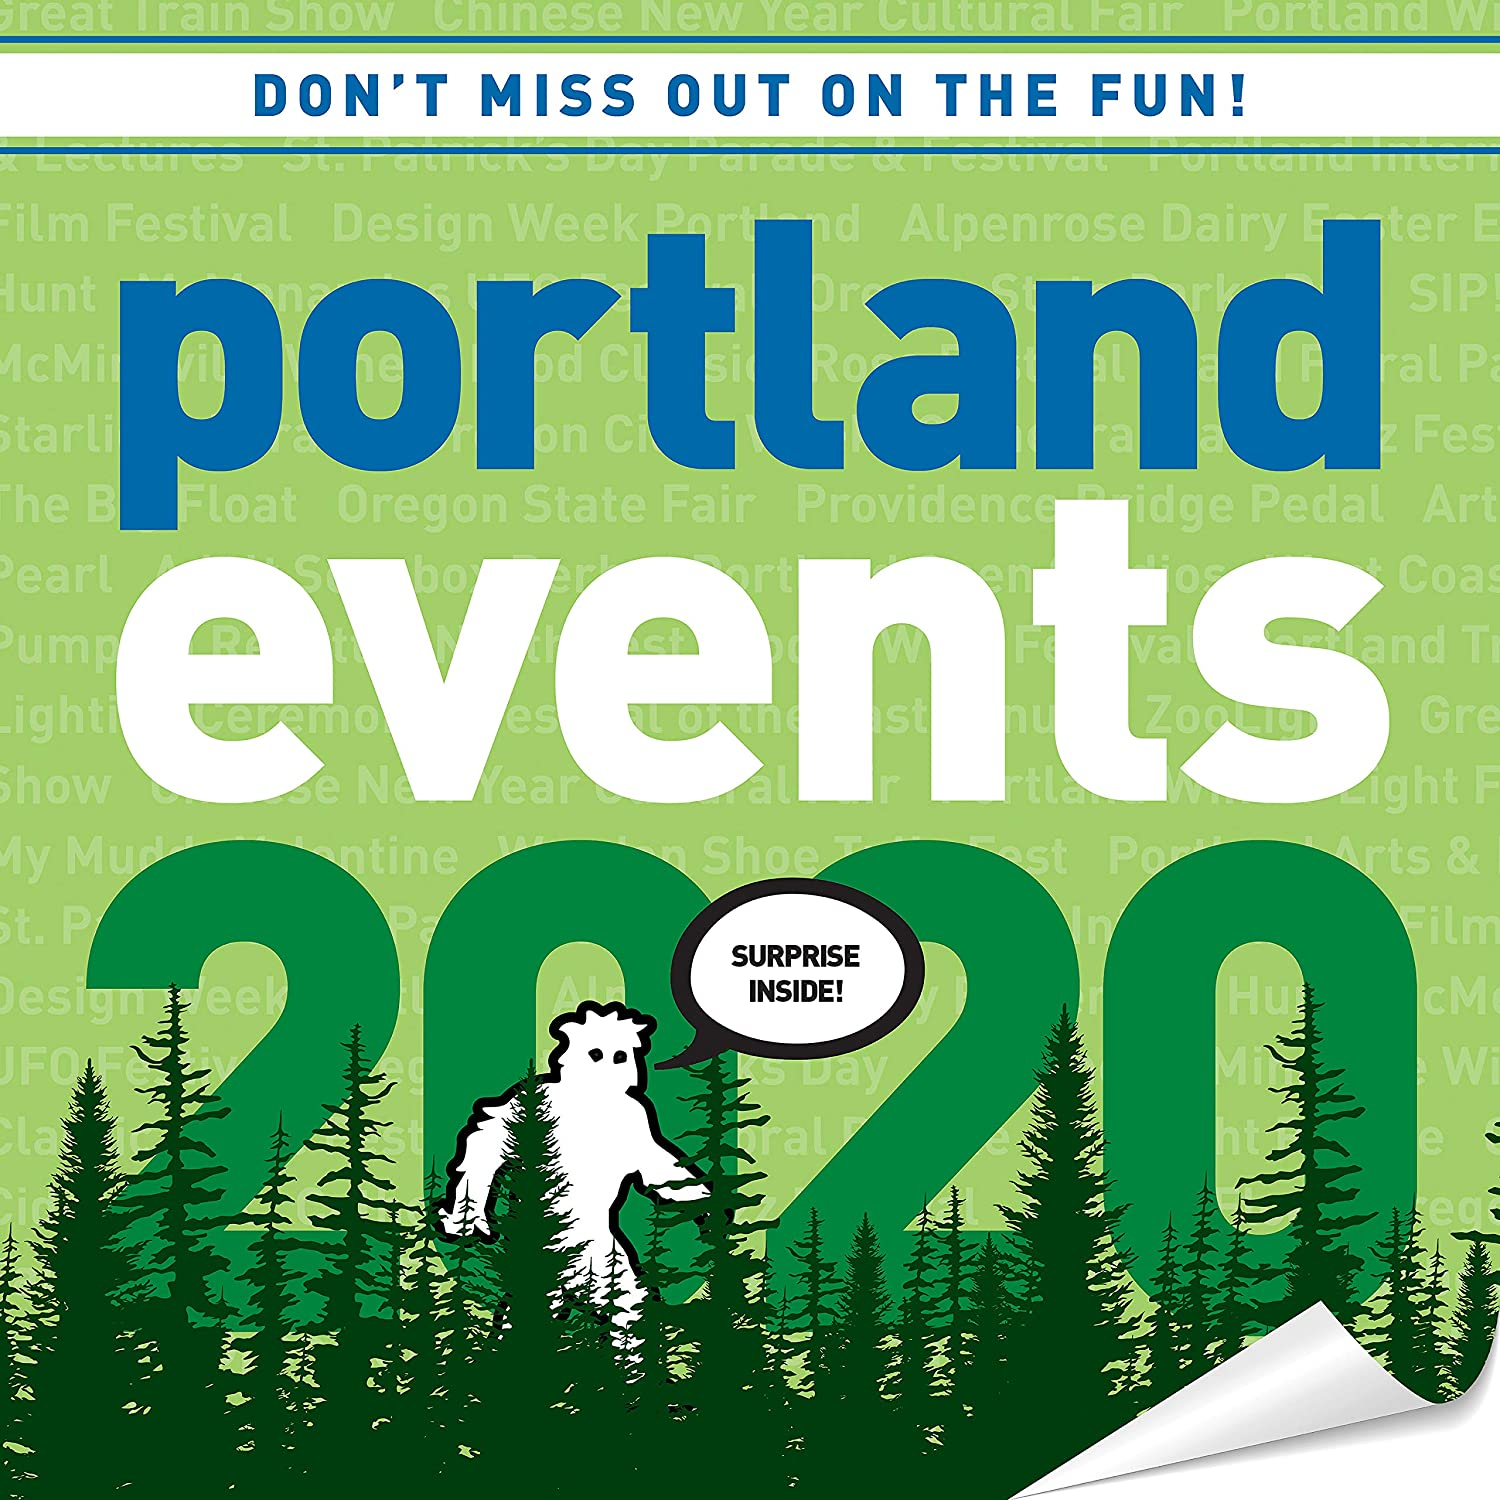 Oregon State Fair 2020 Schedule.Portland Events 2020 Wall Calendar Over 250 Portland Oregon Event Dates And Activities Already On Your Calendar